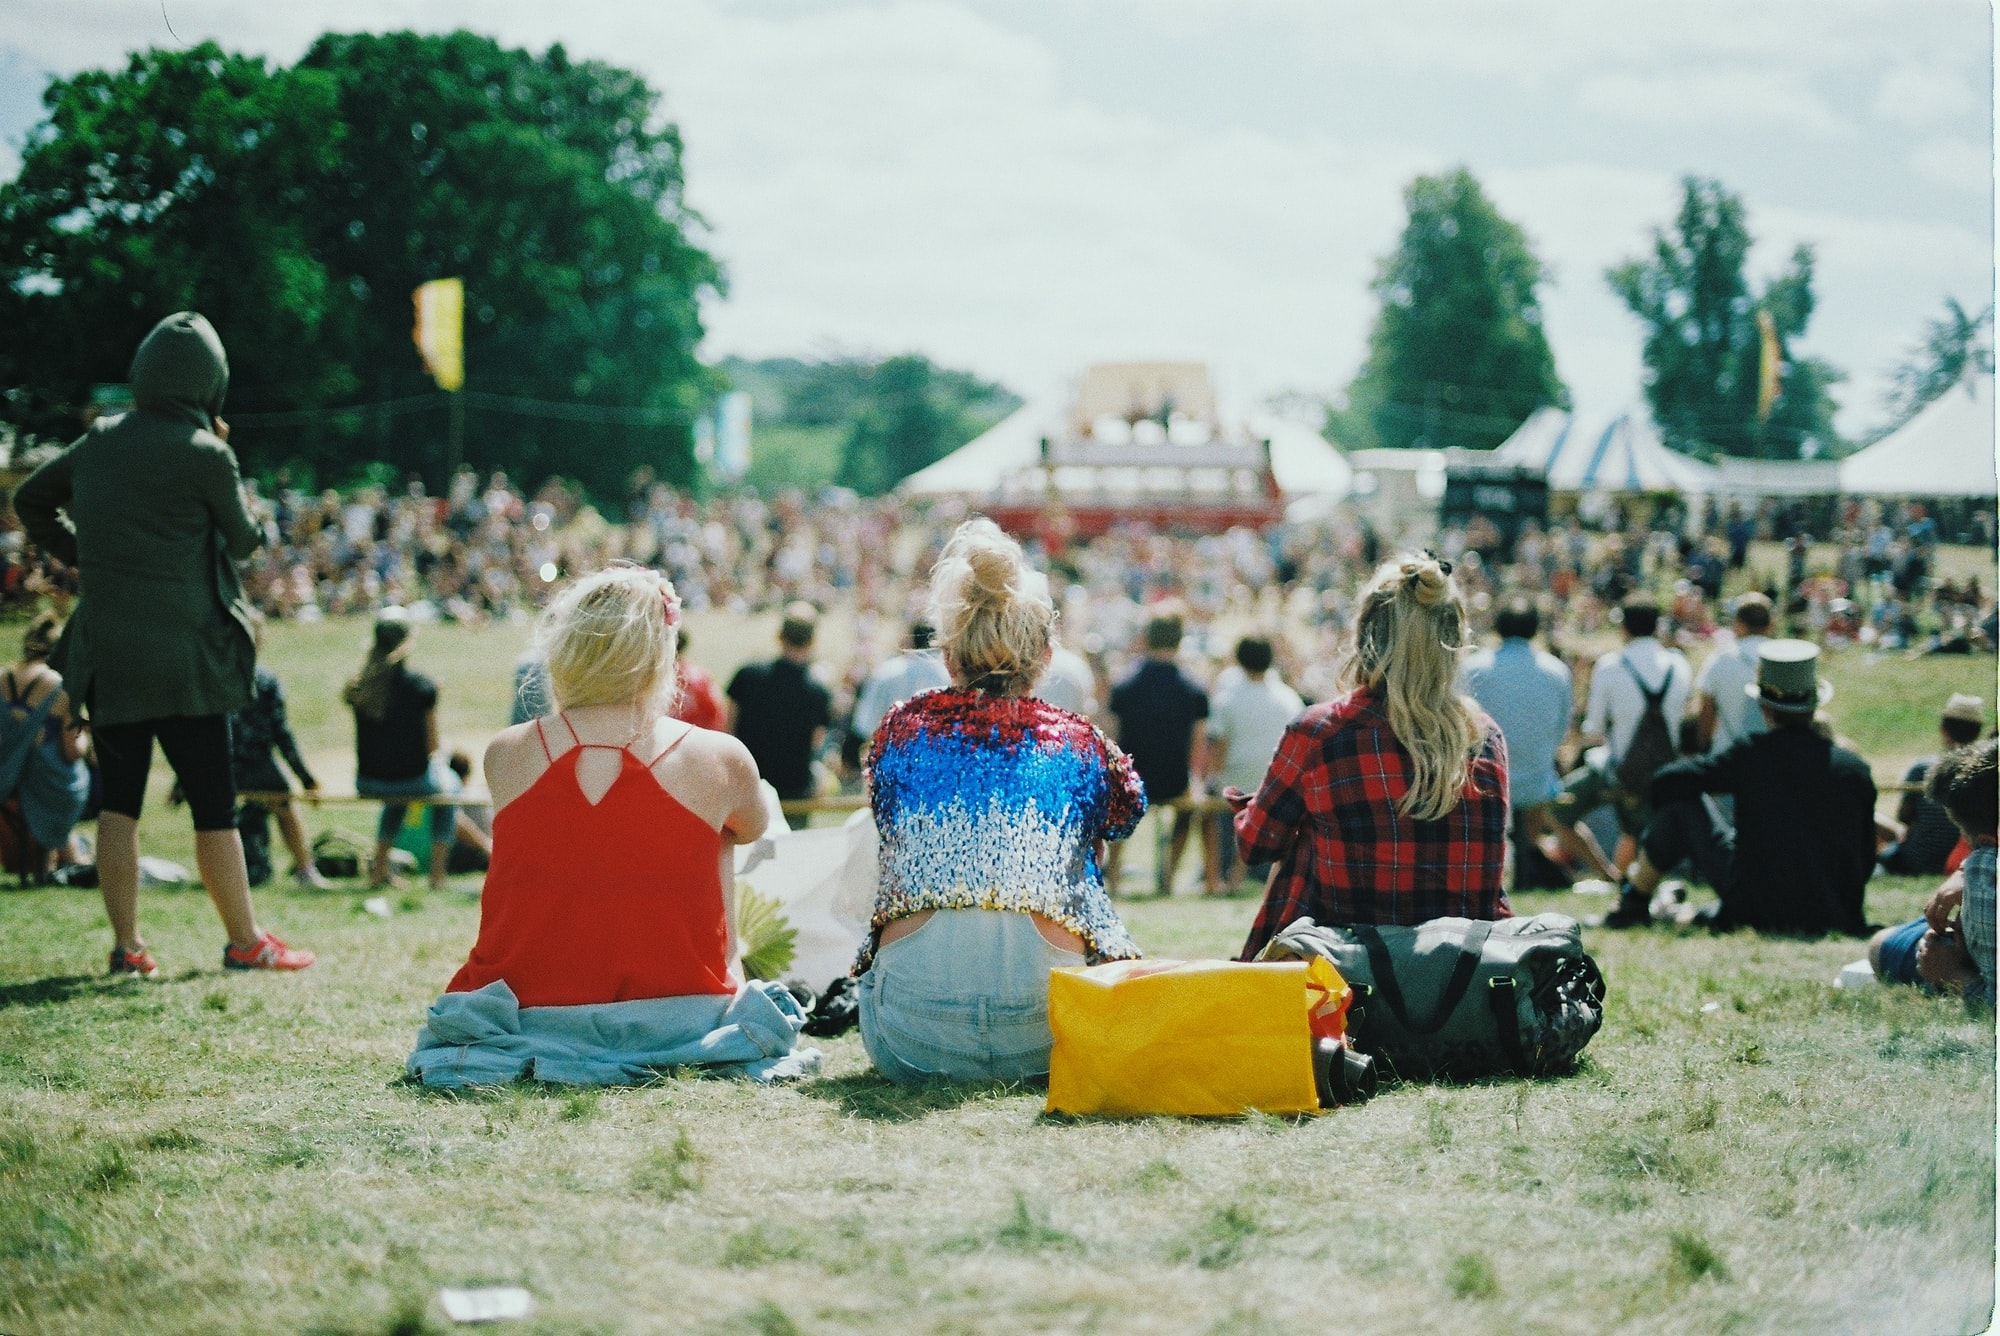 Event Safety Guidelines for Community Event Organisers